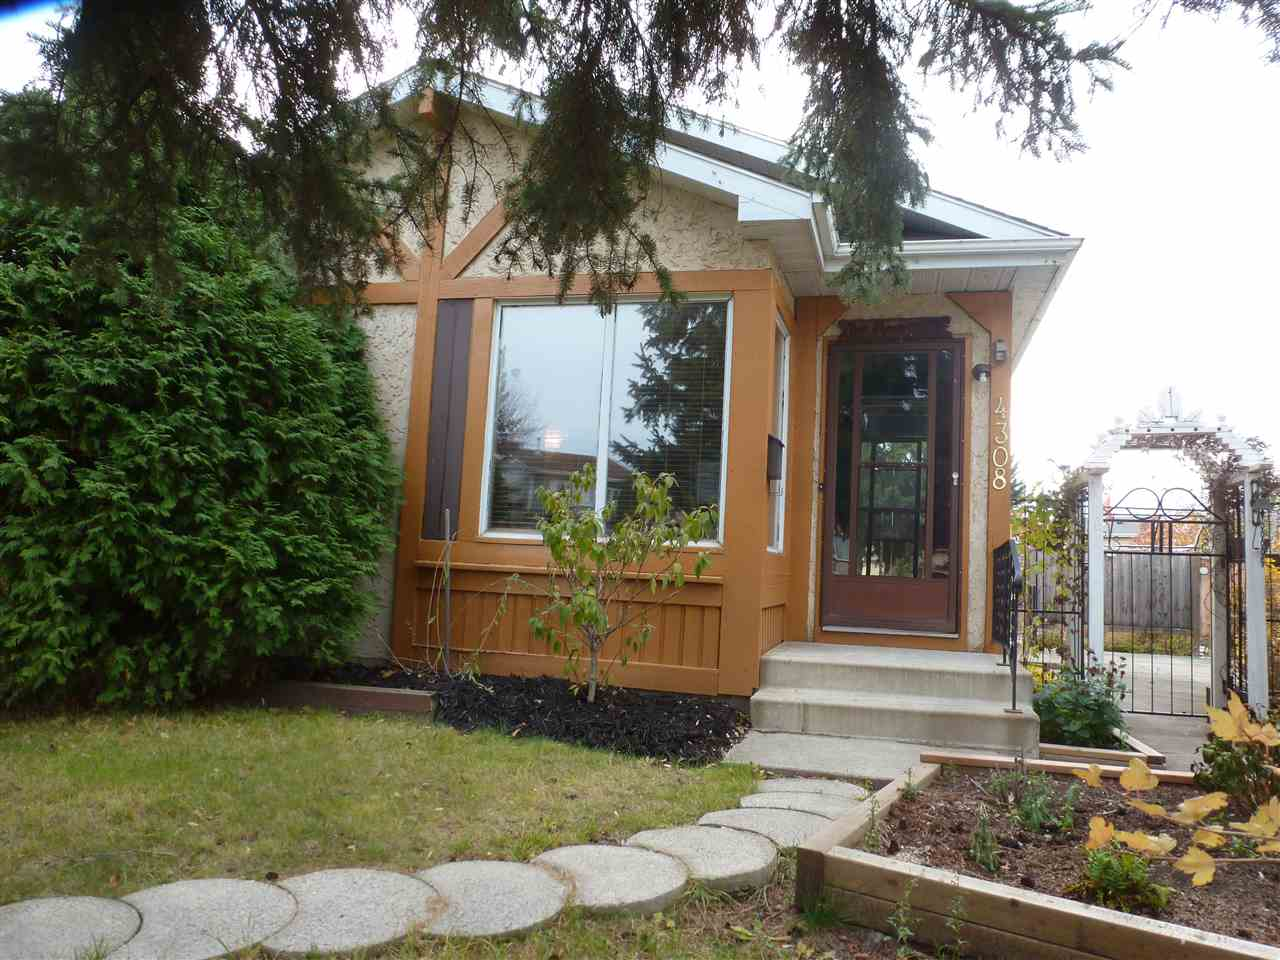 Great Starter Home! 3-Bedroom Bungalow(1981) tucked away in a quiet Cul de Sac in the Kiniski Gardens Neighborhood  in SouthEast Edmonton. Comes with fully landscaped backyard with room for Double Garage. Close to all amenities.